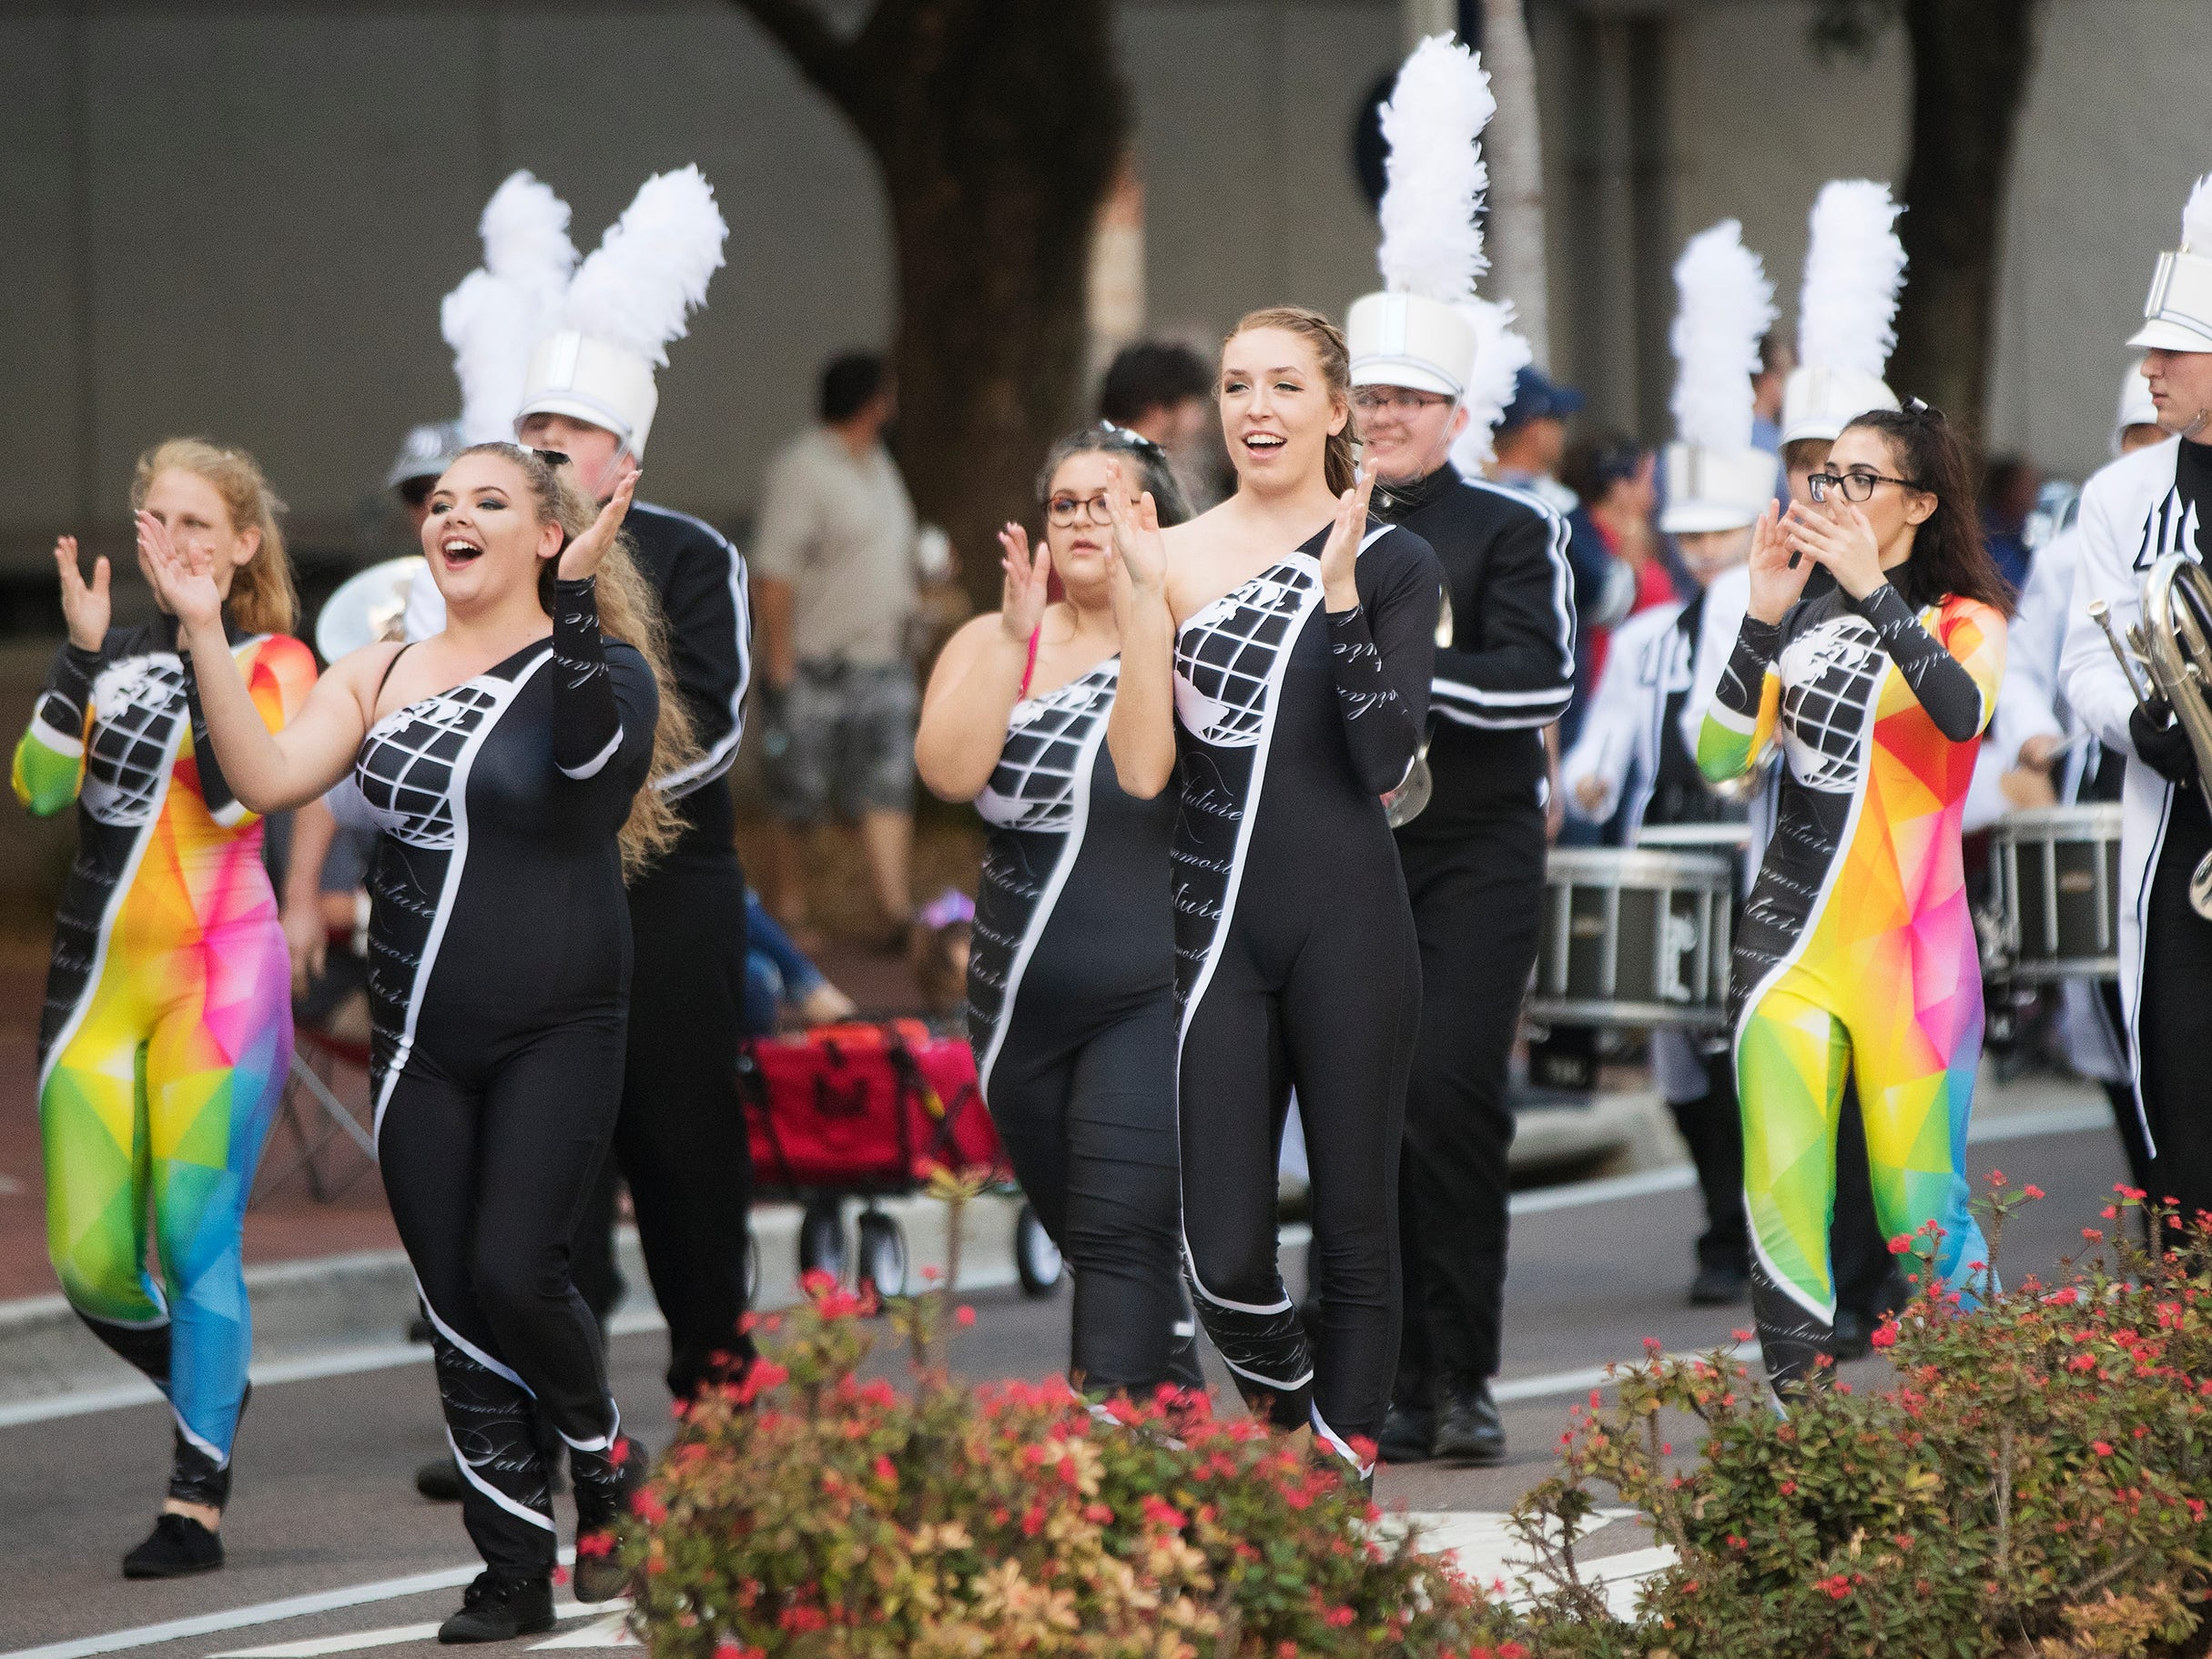 The Mariner High School band marches in the Edison Festival of Light Junior Parade on Sunday in downtown Fort Myers. More than 70 groups participated in the annual event.